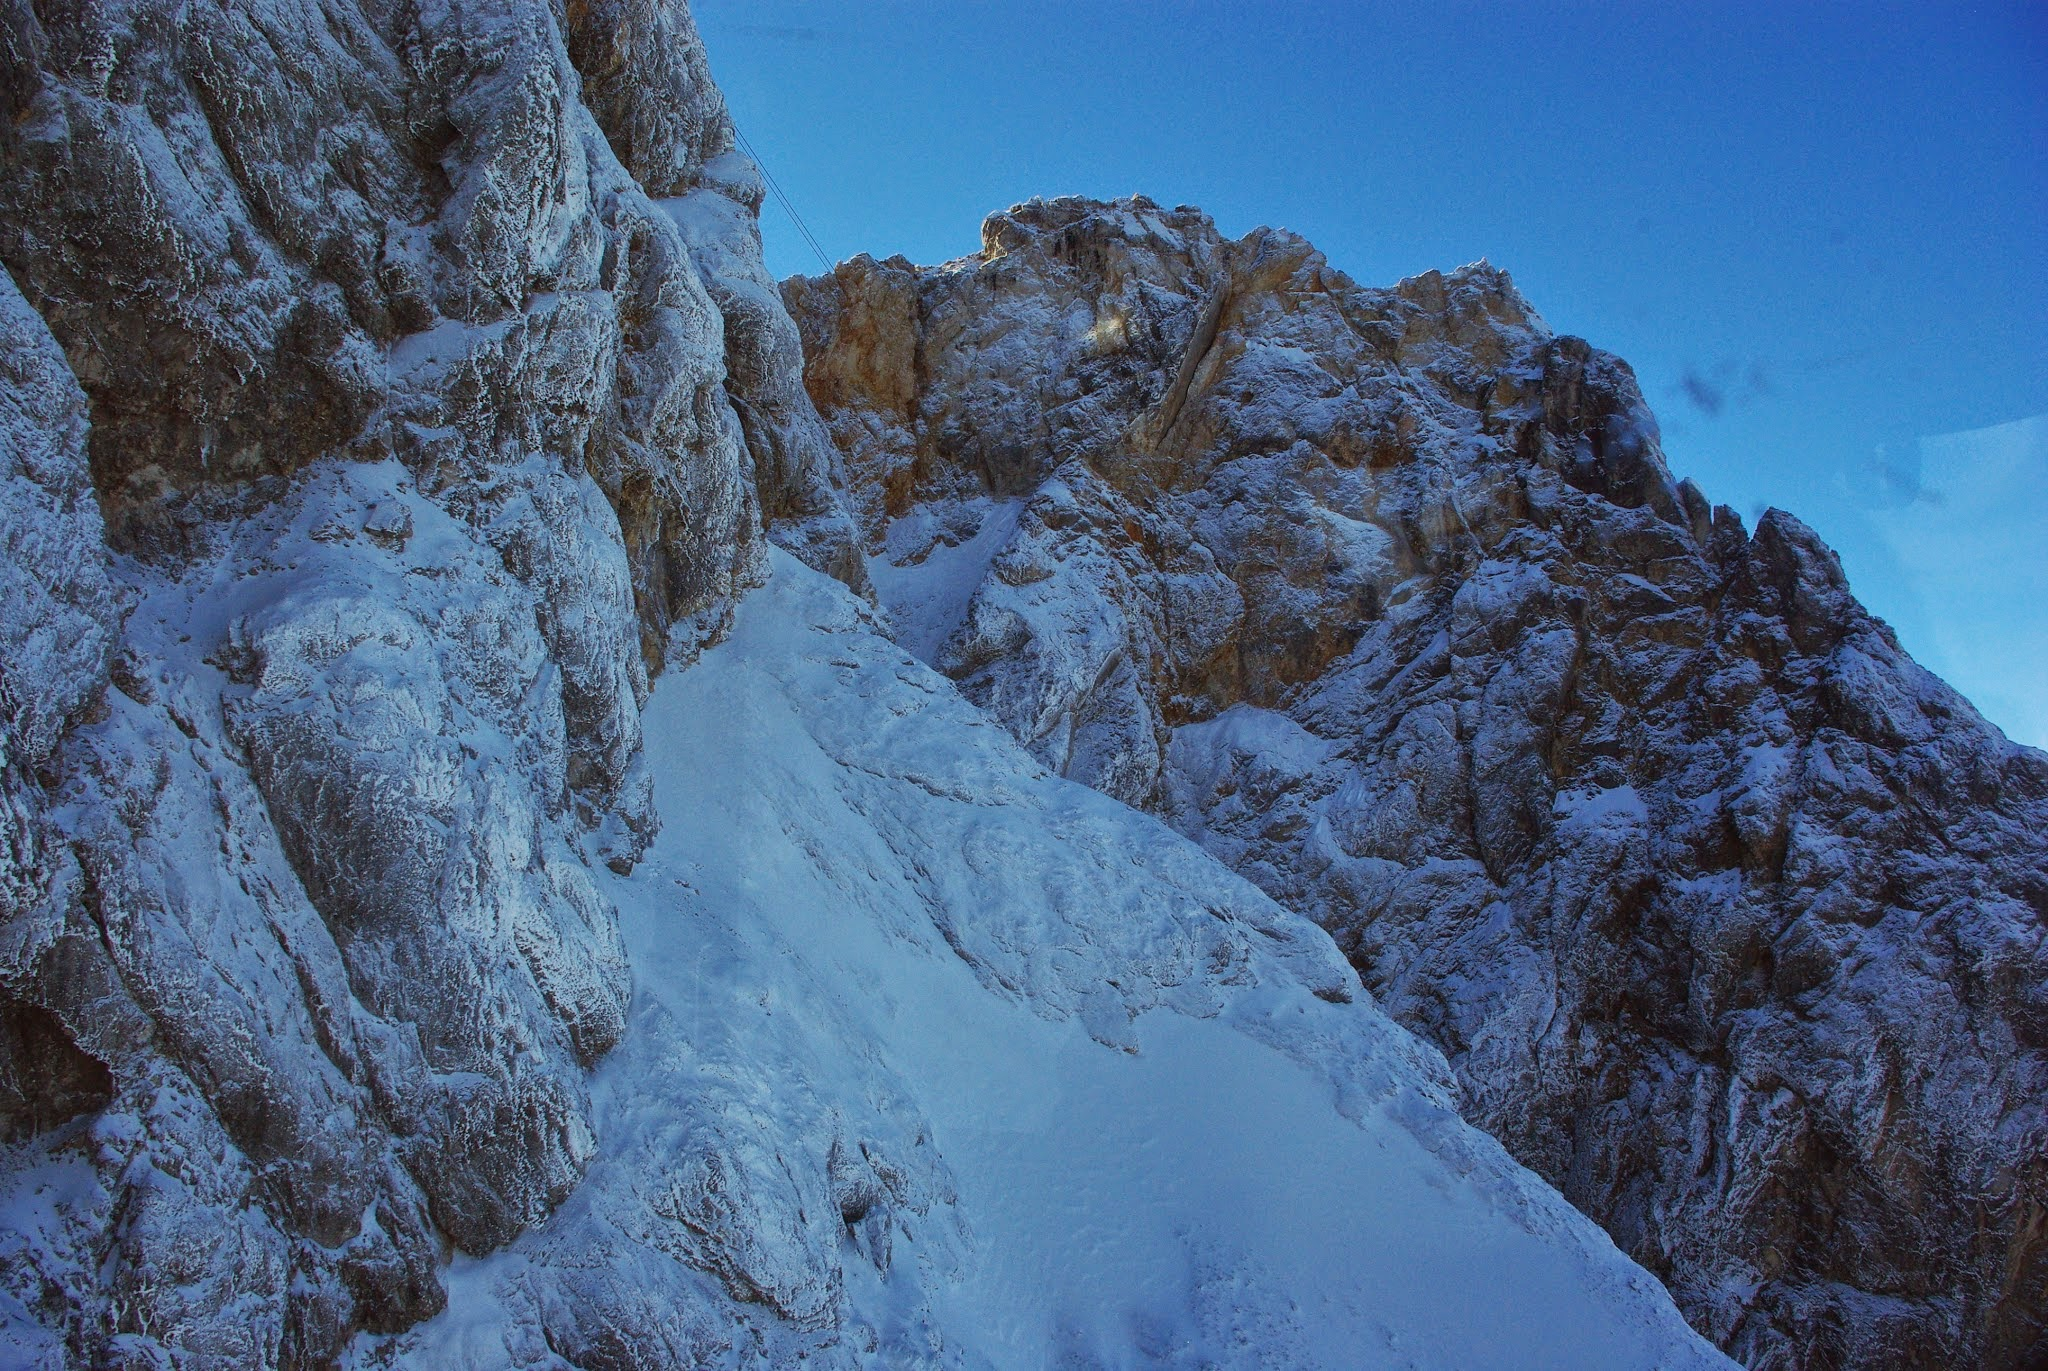 One last look at the snowy limestone of the Zugspitze as we left the summit on the Eibsee funicular.